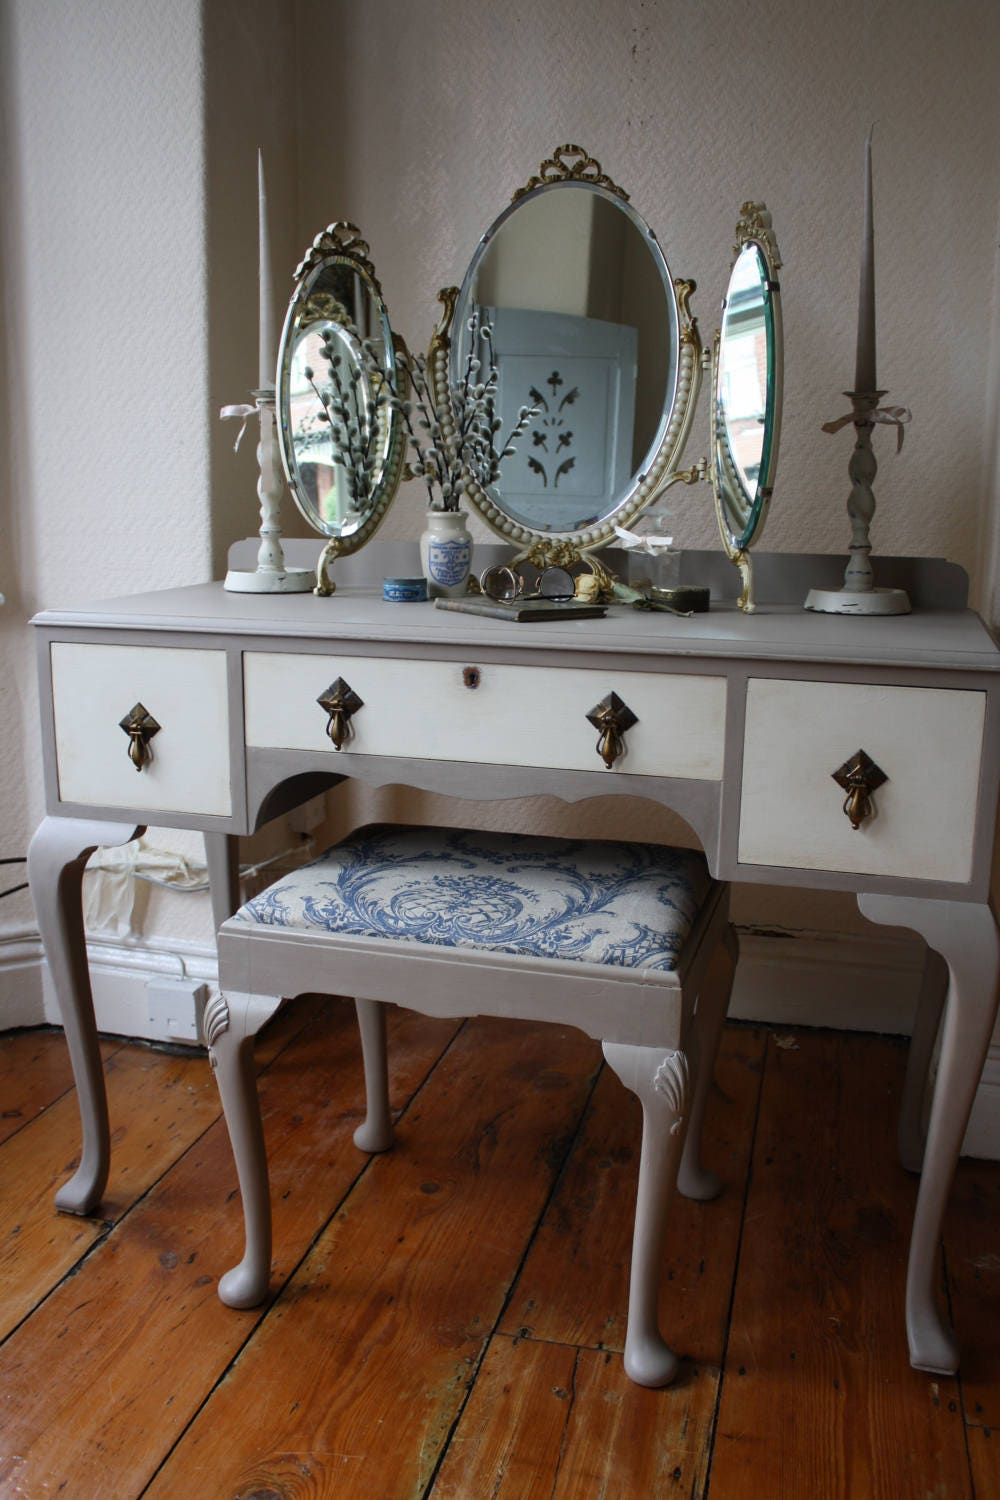 Dressing Table Chairs And Stools: Upcycled Vintage Dressing Table Stool